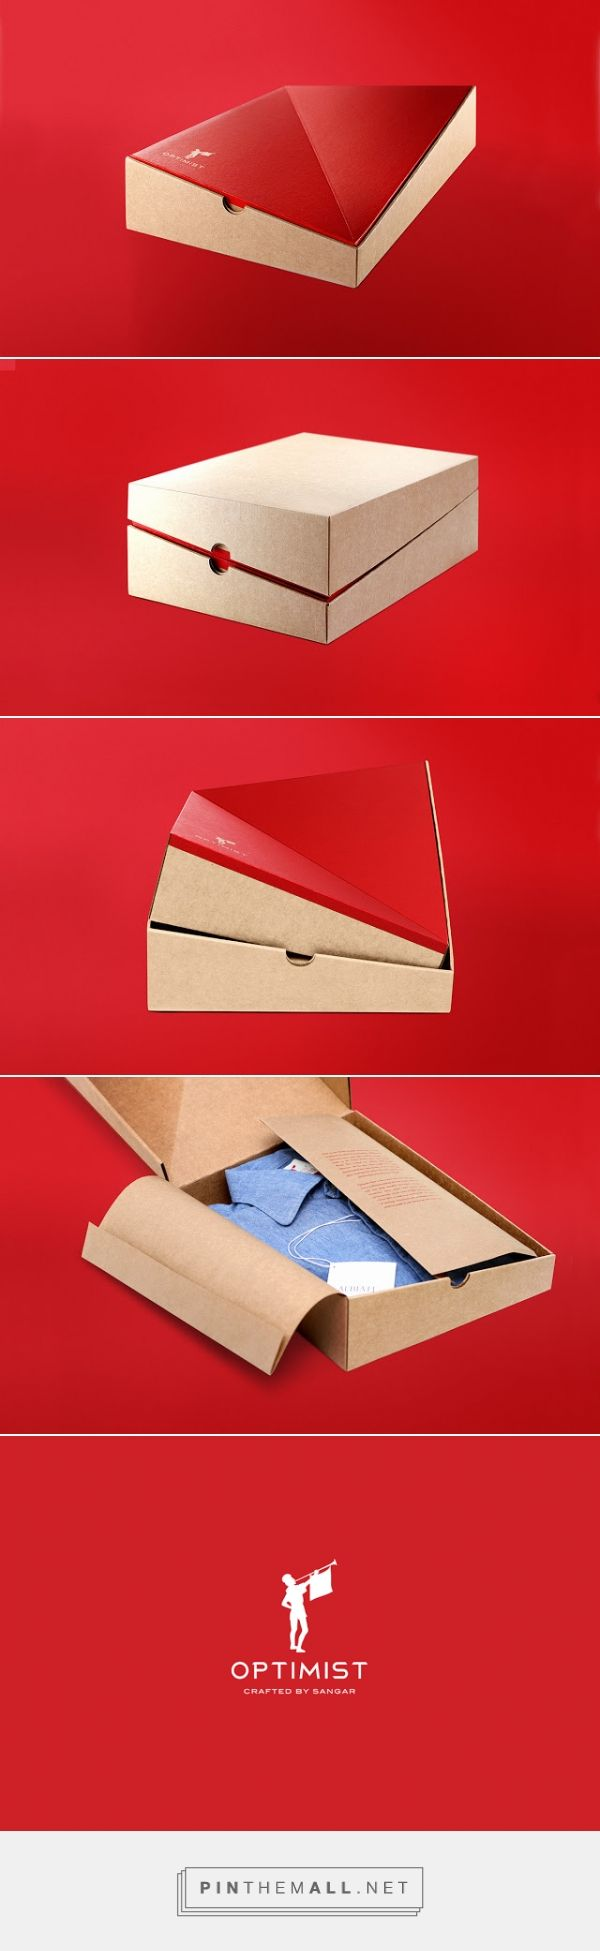 Sangar Optimist #shirt #packaging designed by Taevas Ogilvy - http://www.packagingoftheworld.com/2015/10/sangar-optimist.html